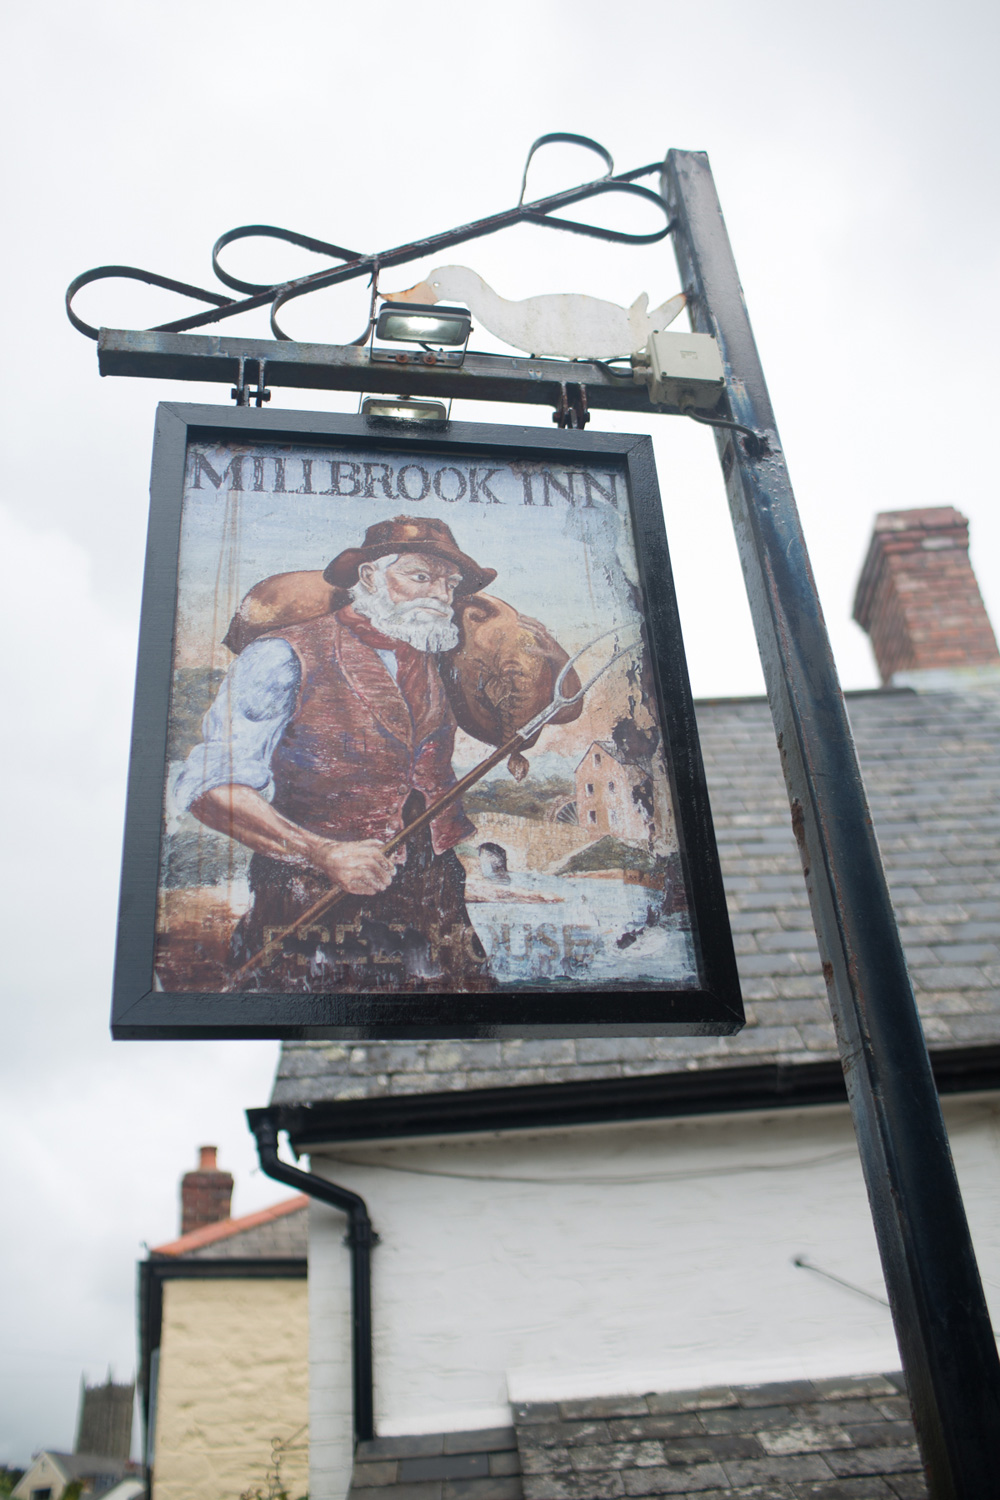 The Millbrook Inn - Devon